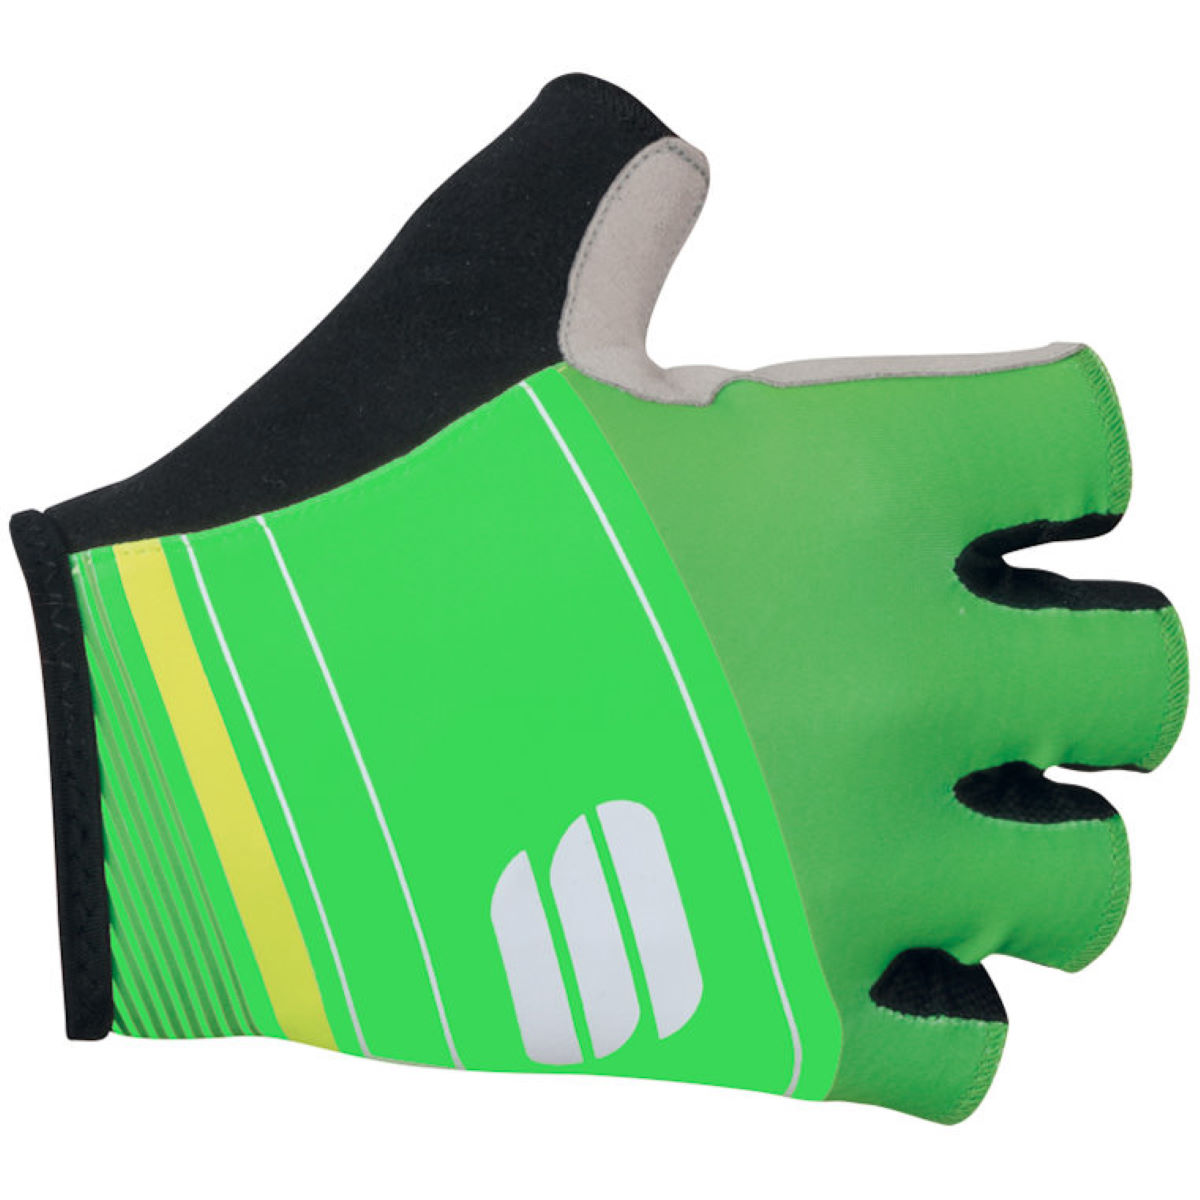 Gants courts Sportful Gruppetto Pro - XL Green/Yellow Gants courts